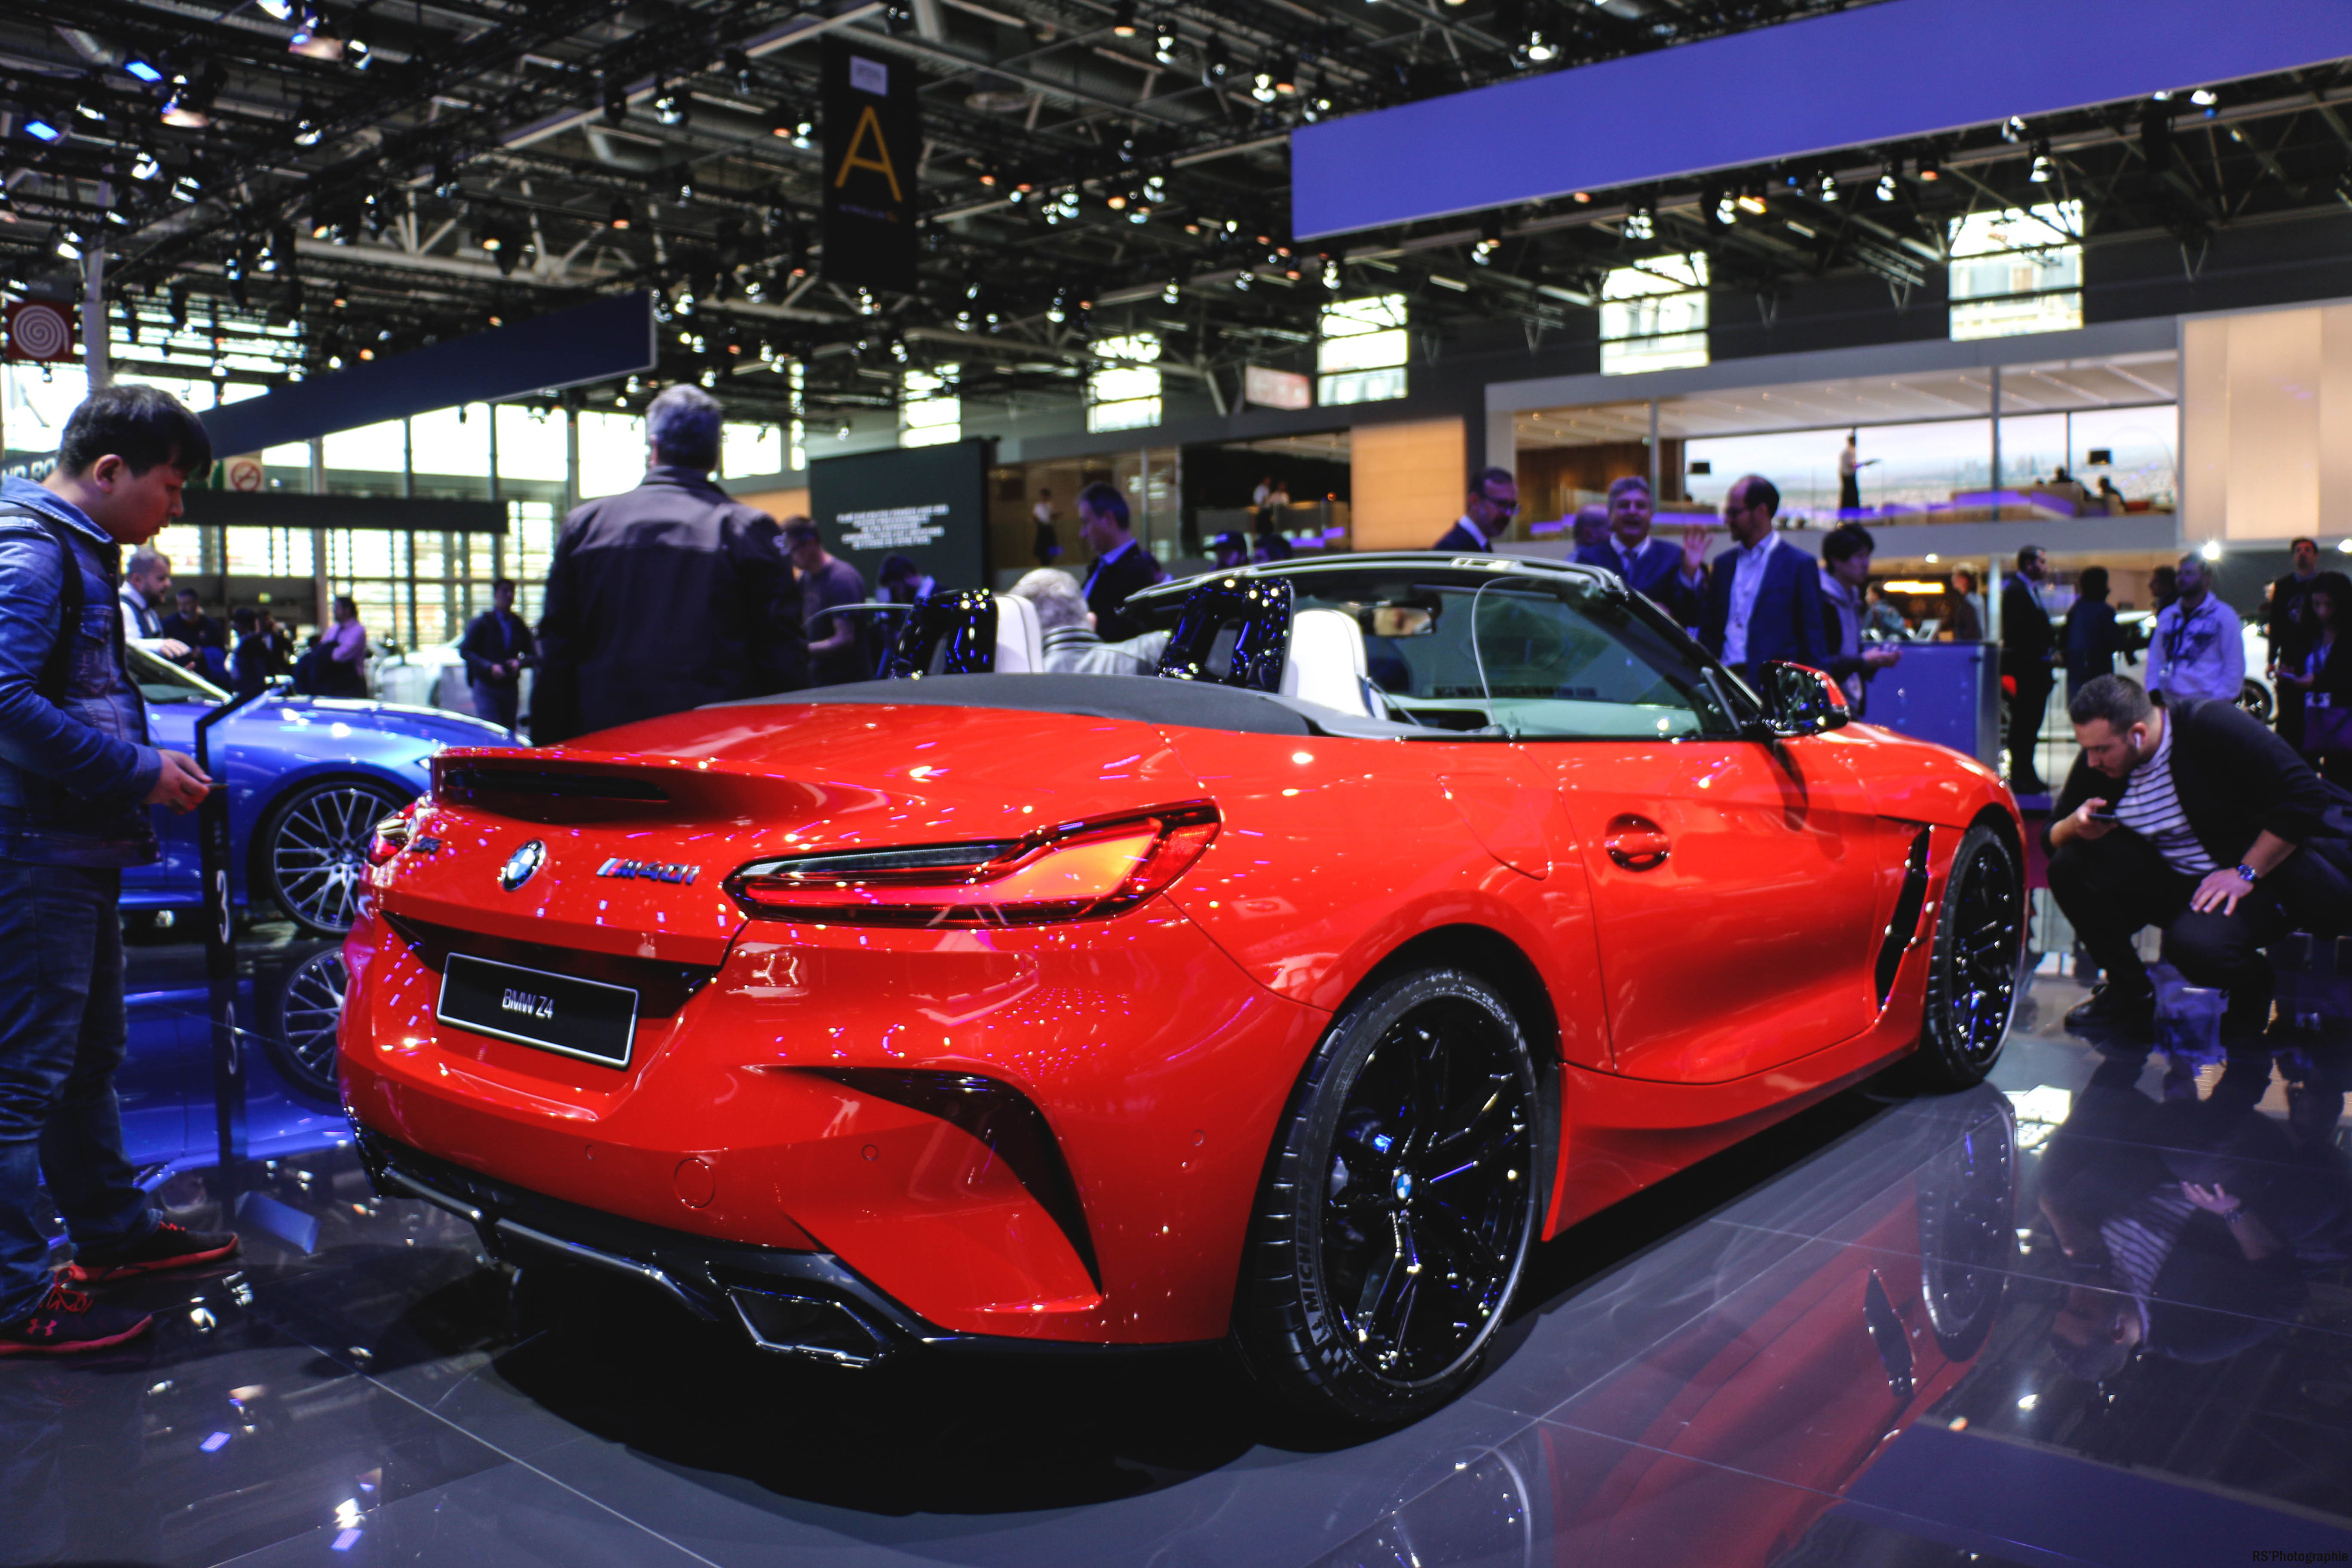 BMW Z4 - rear - Paris Motor Show - 2018 - Mondial Auto - photo by Arnaud Demasier RS Photographie